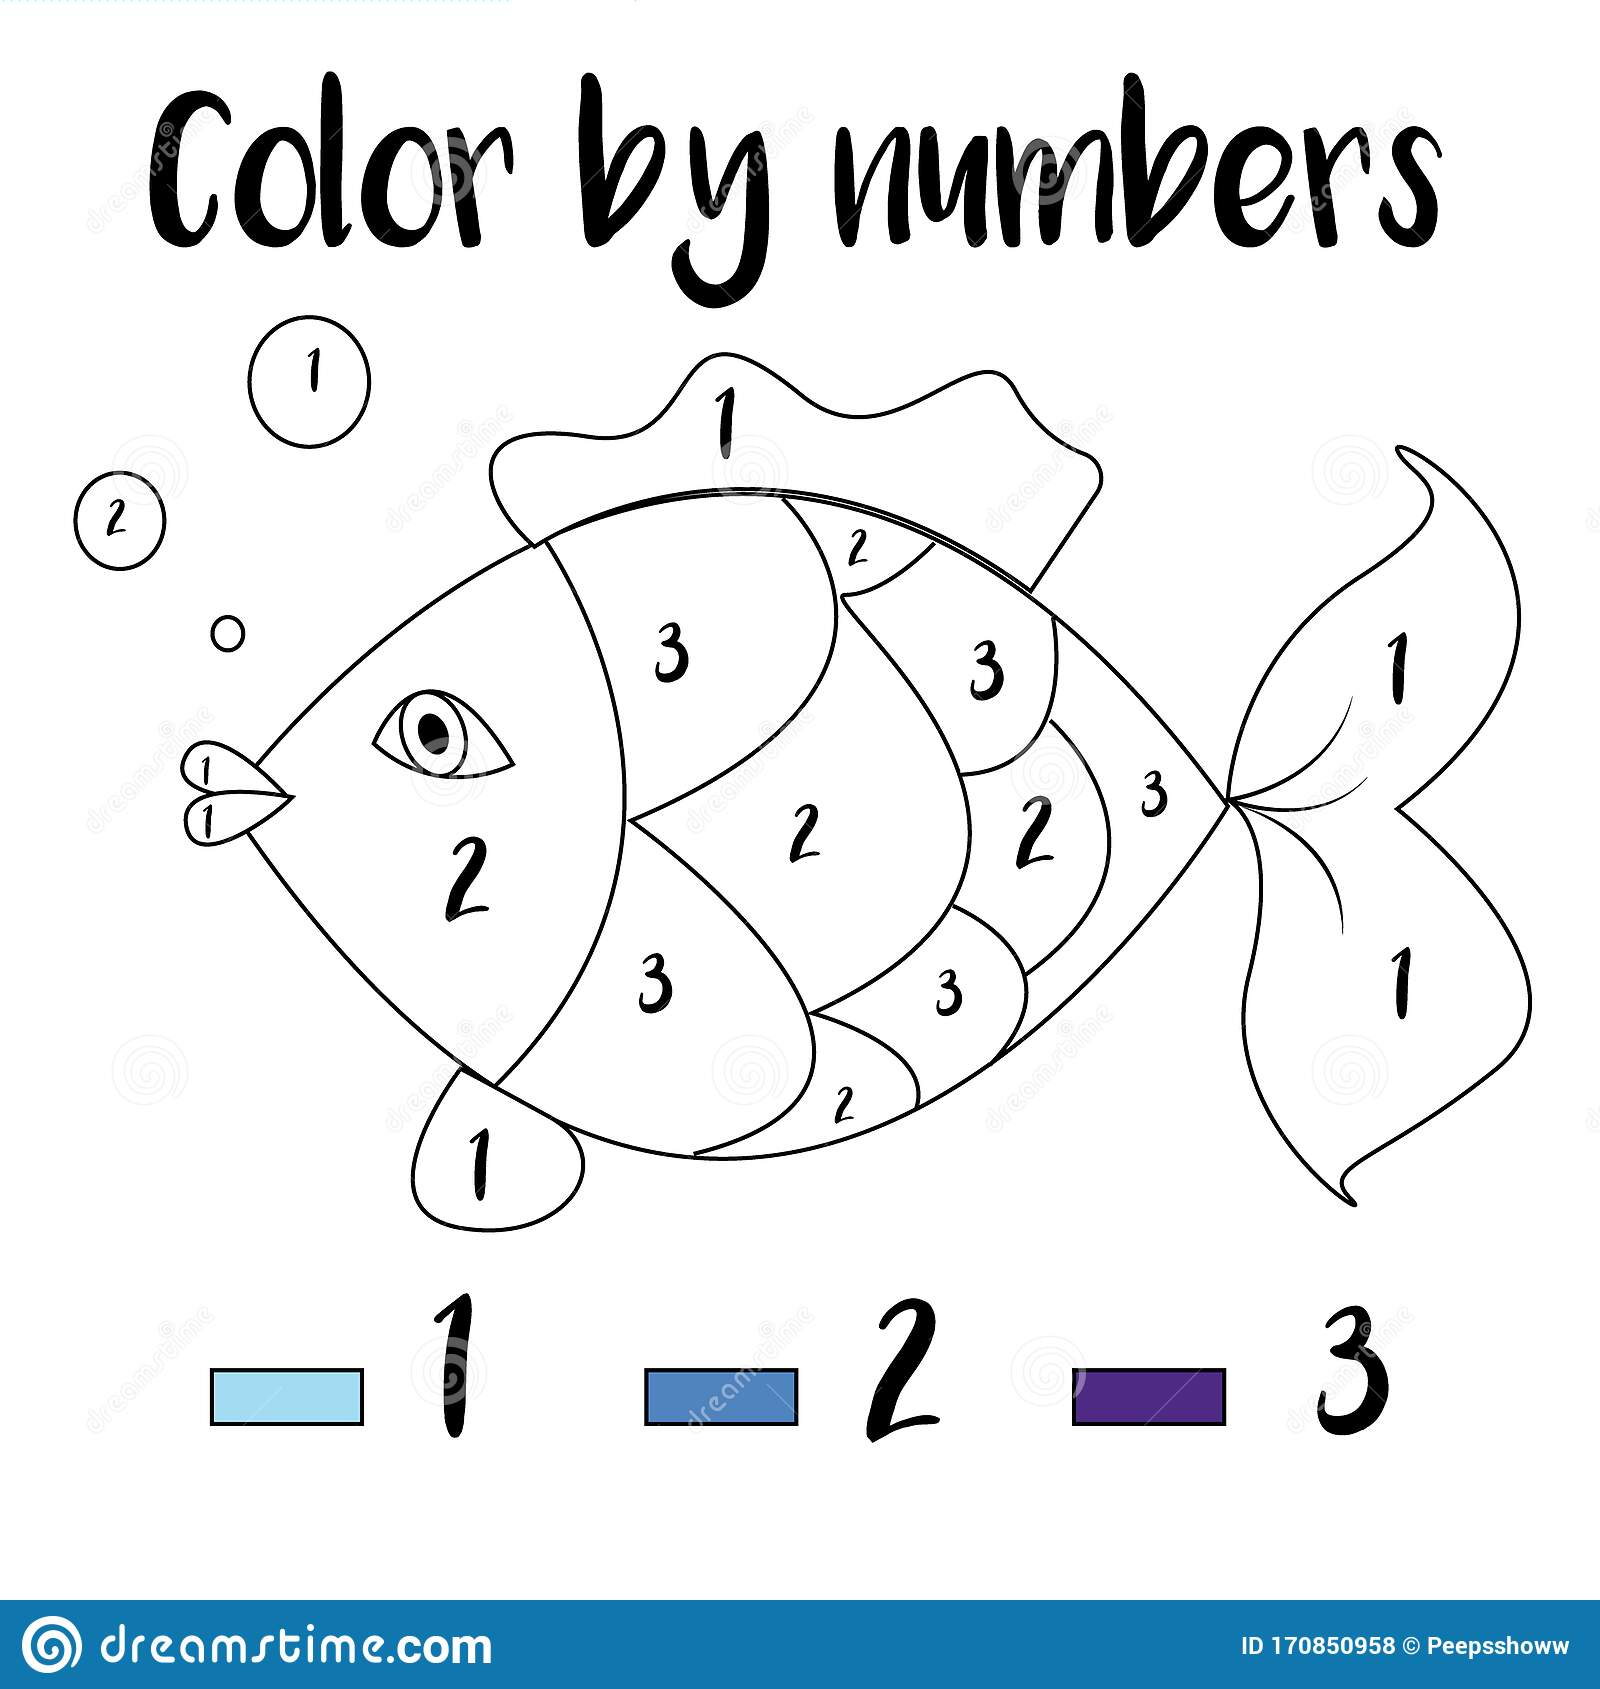 Coloring Page Color By Numbers Educational Children Game